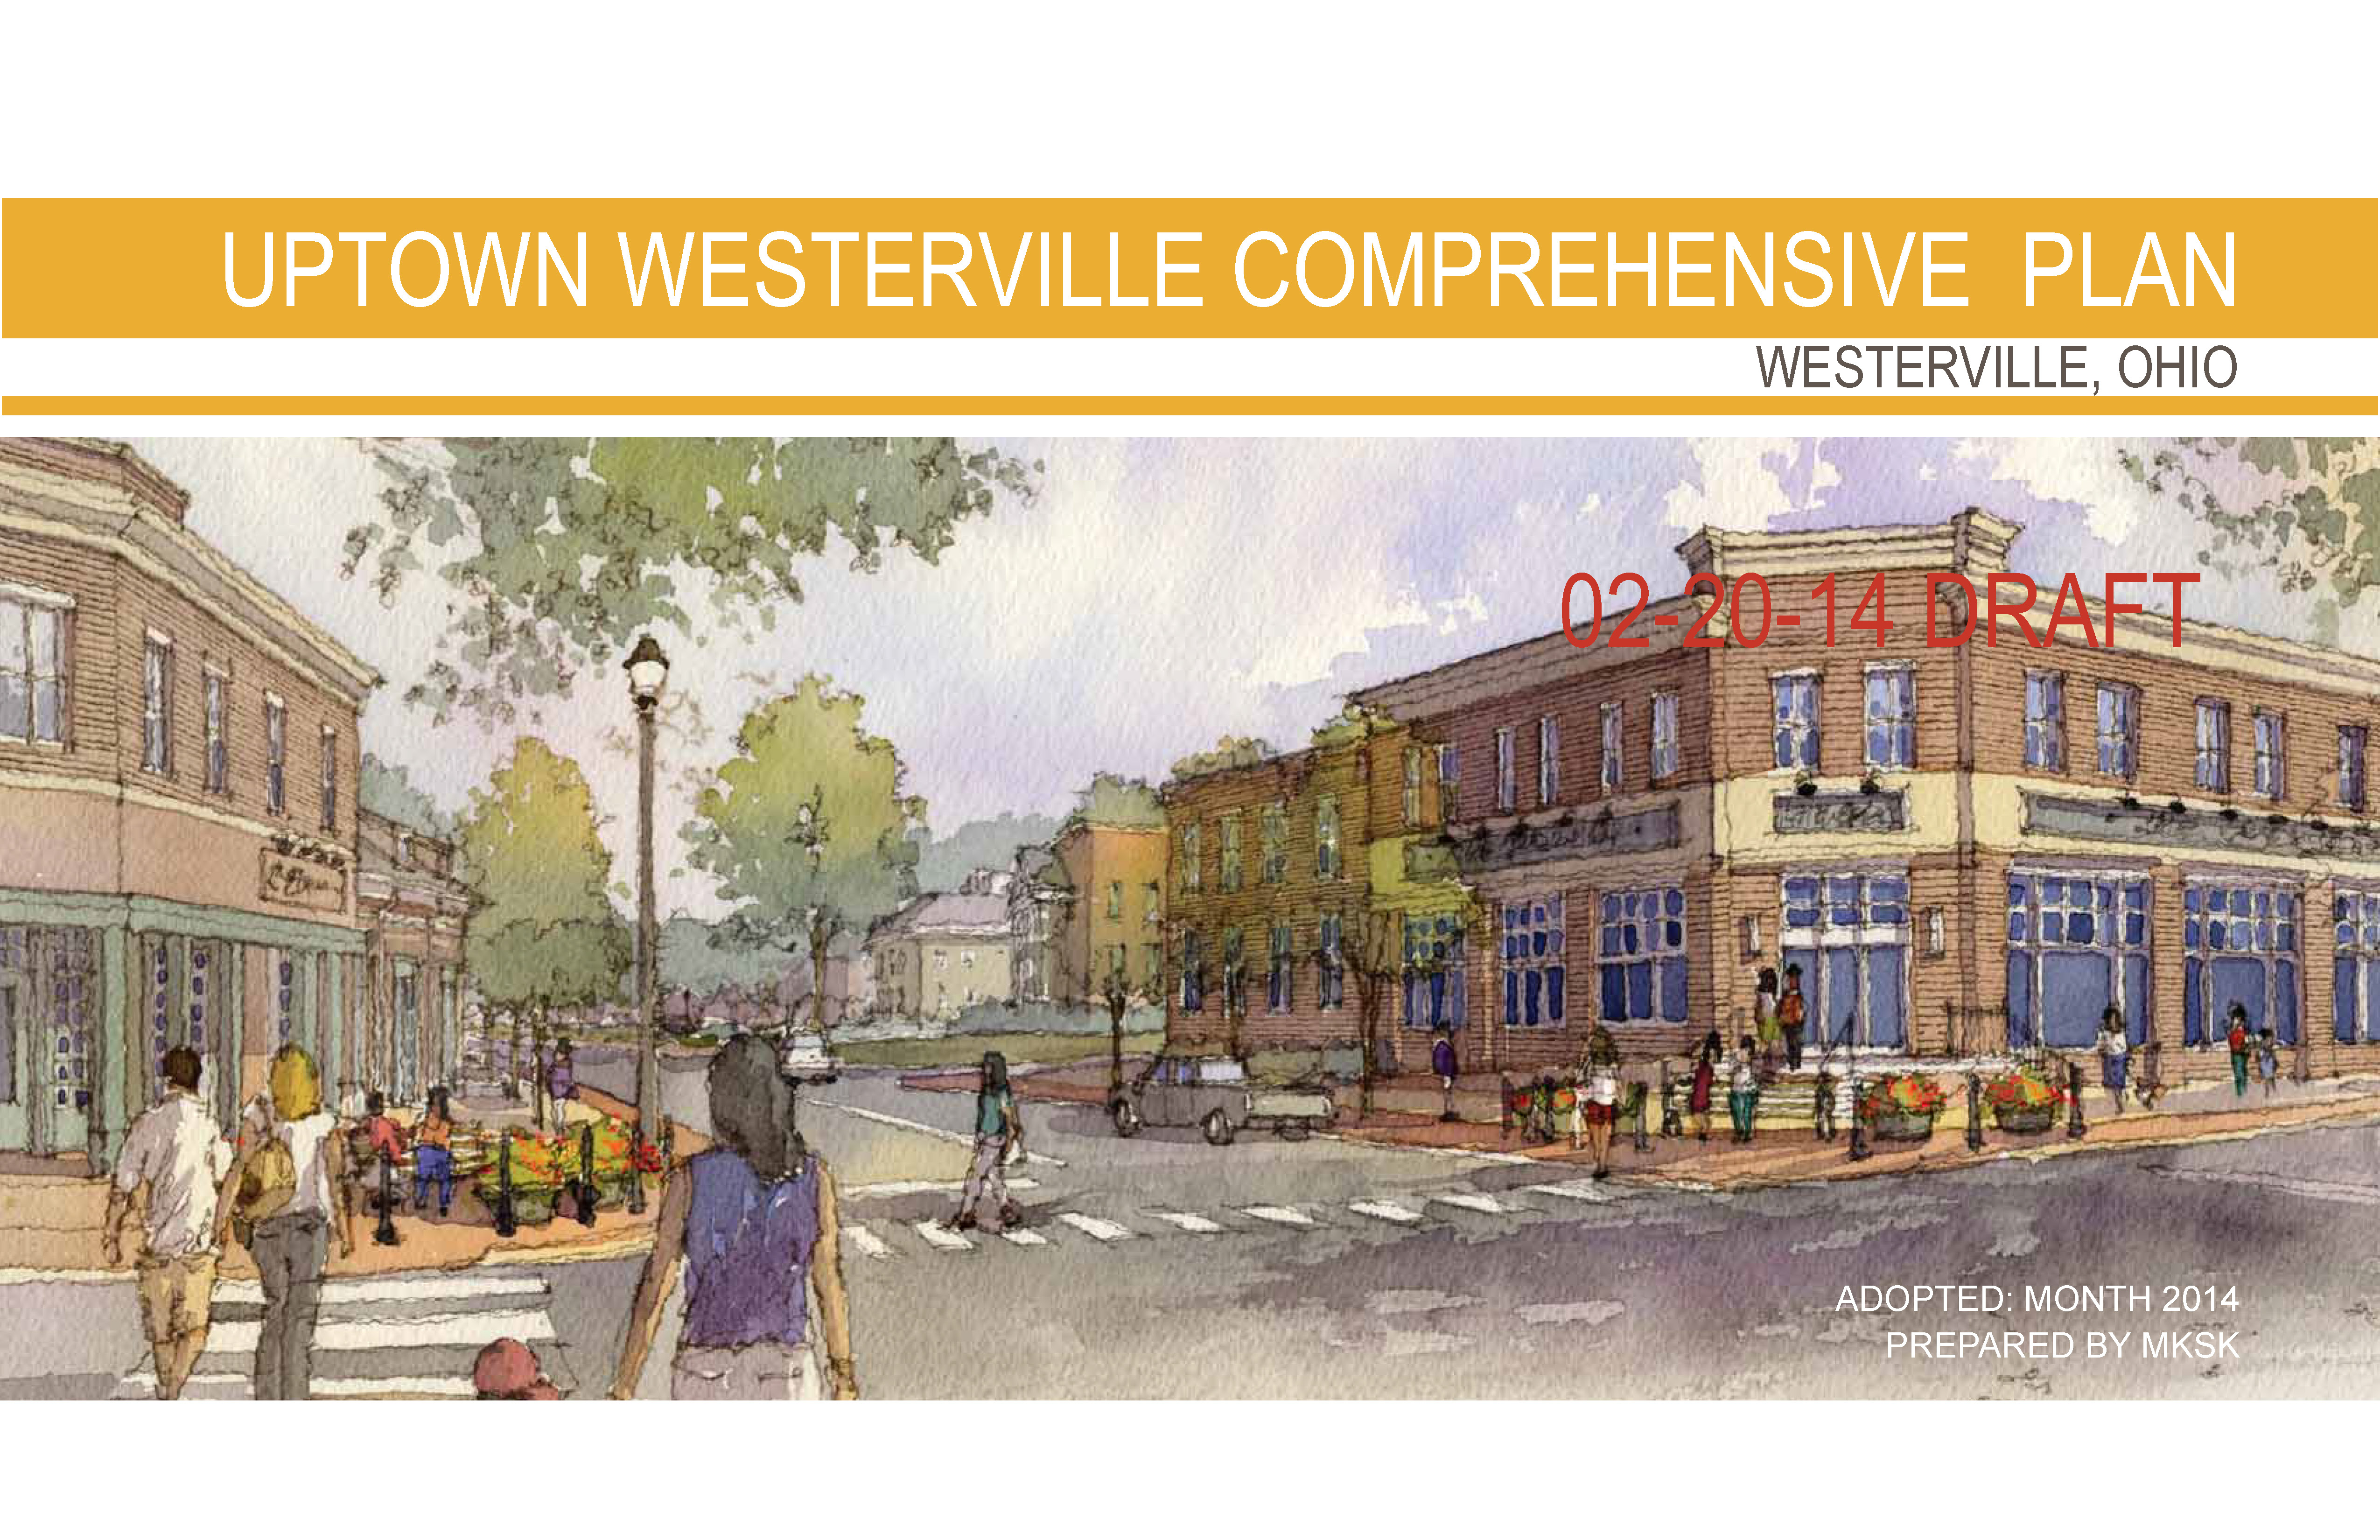 Uptown Westerville Comprehensive Plan - Draft